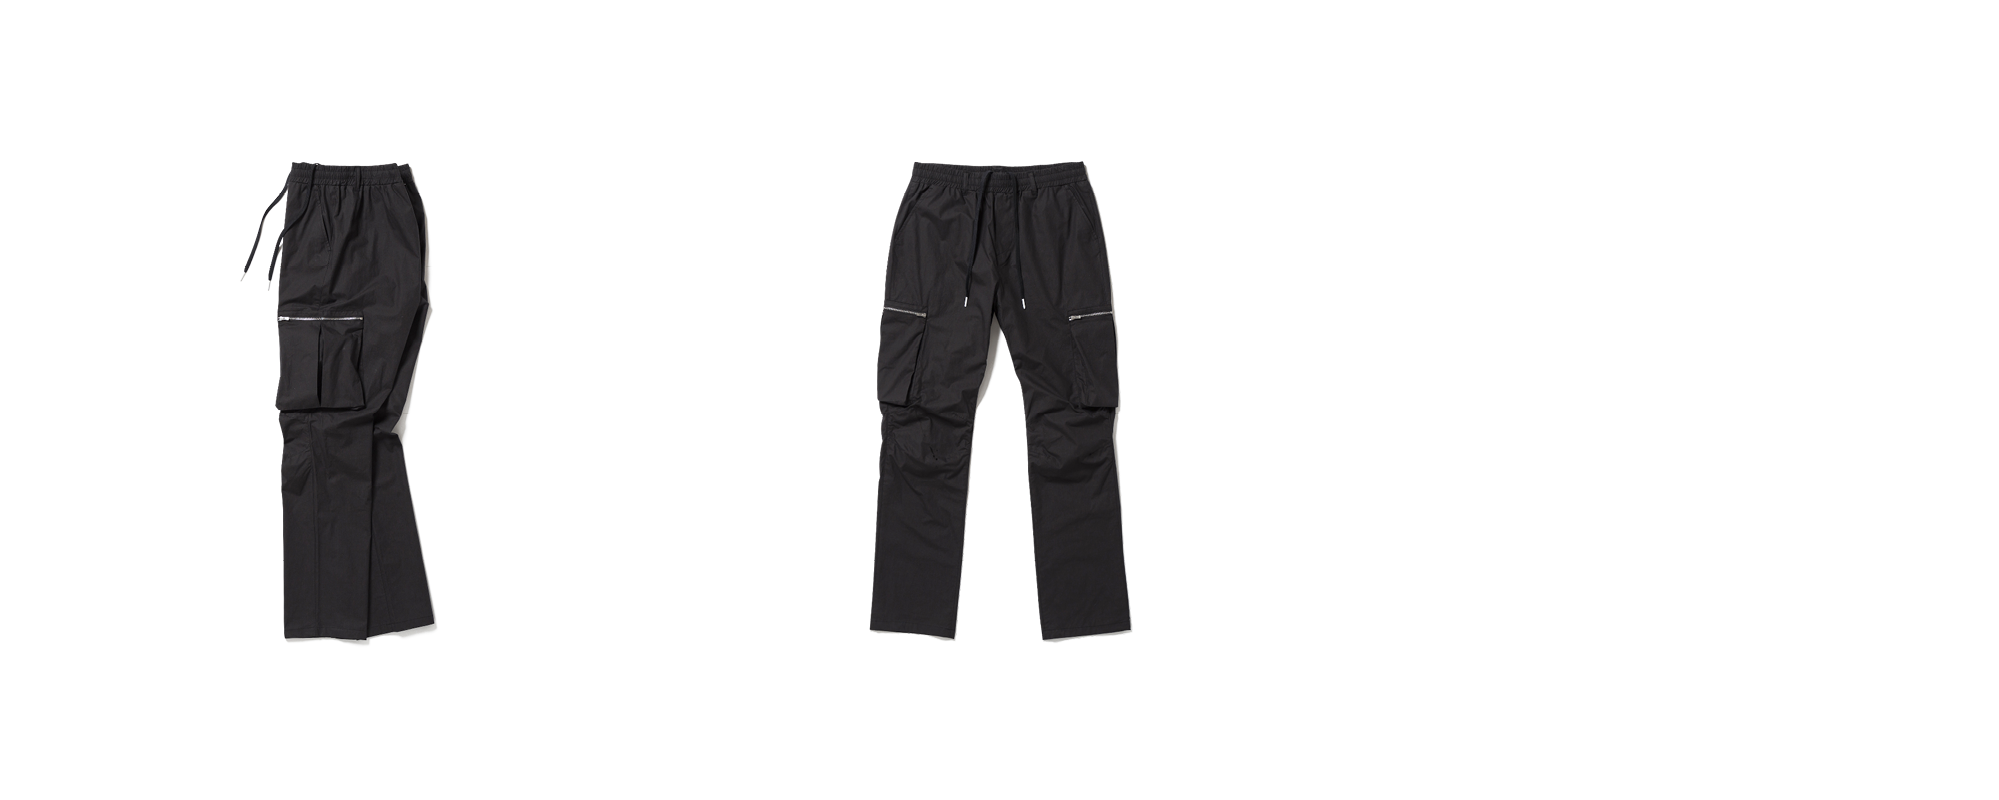 Cotton Cargo Pants Black